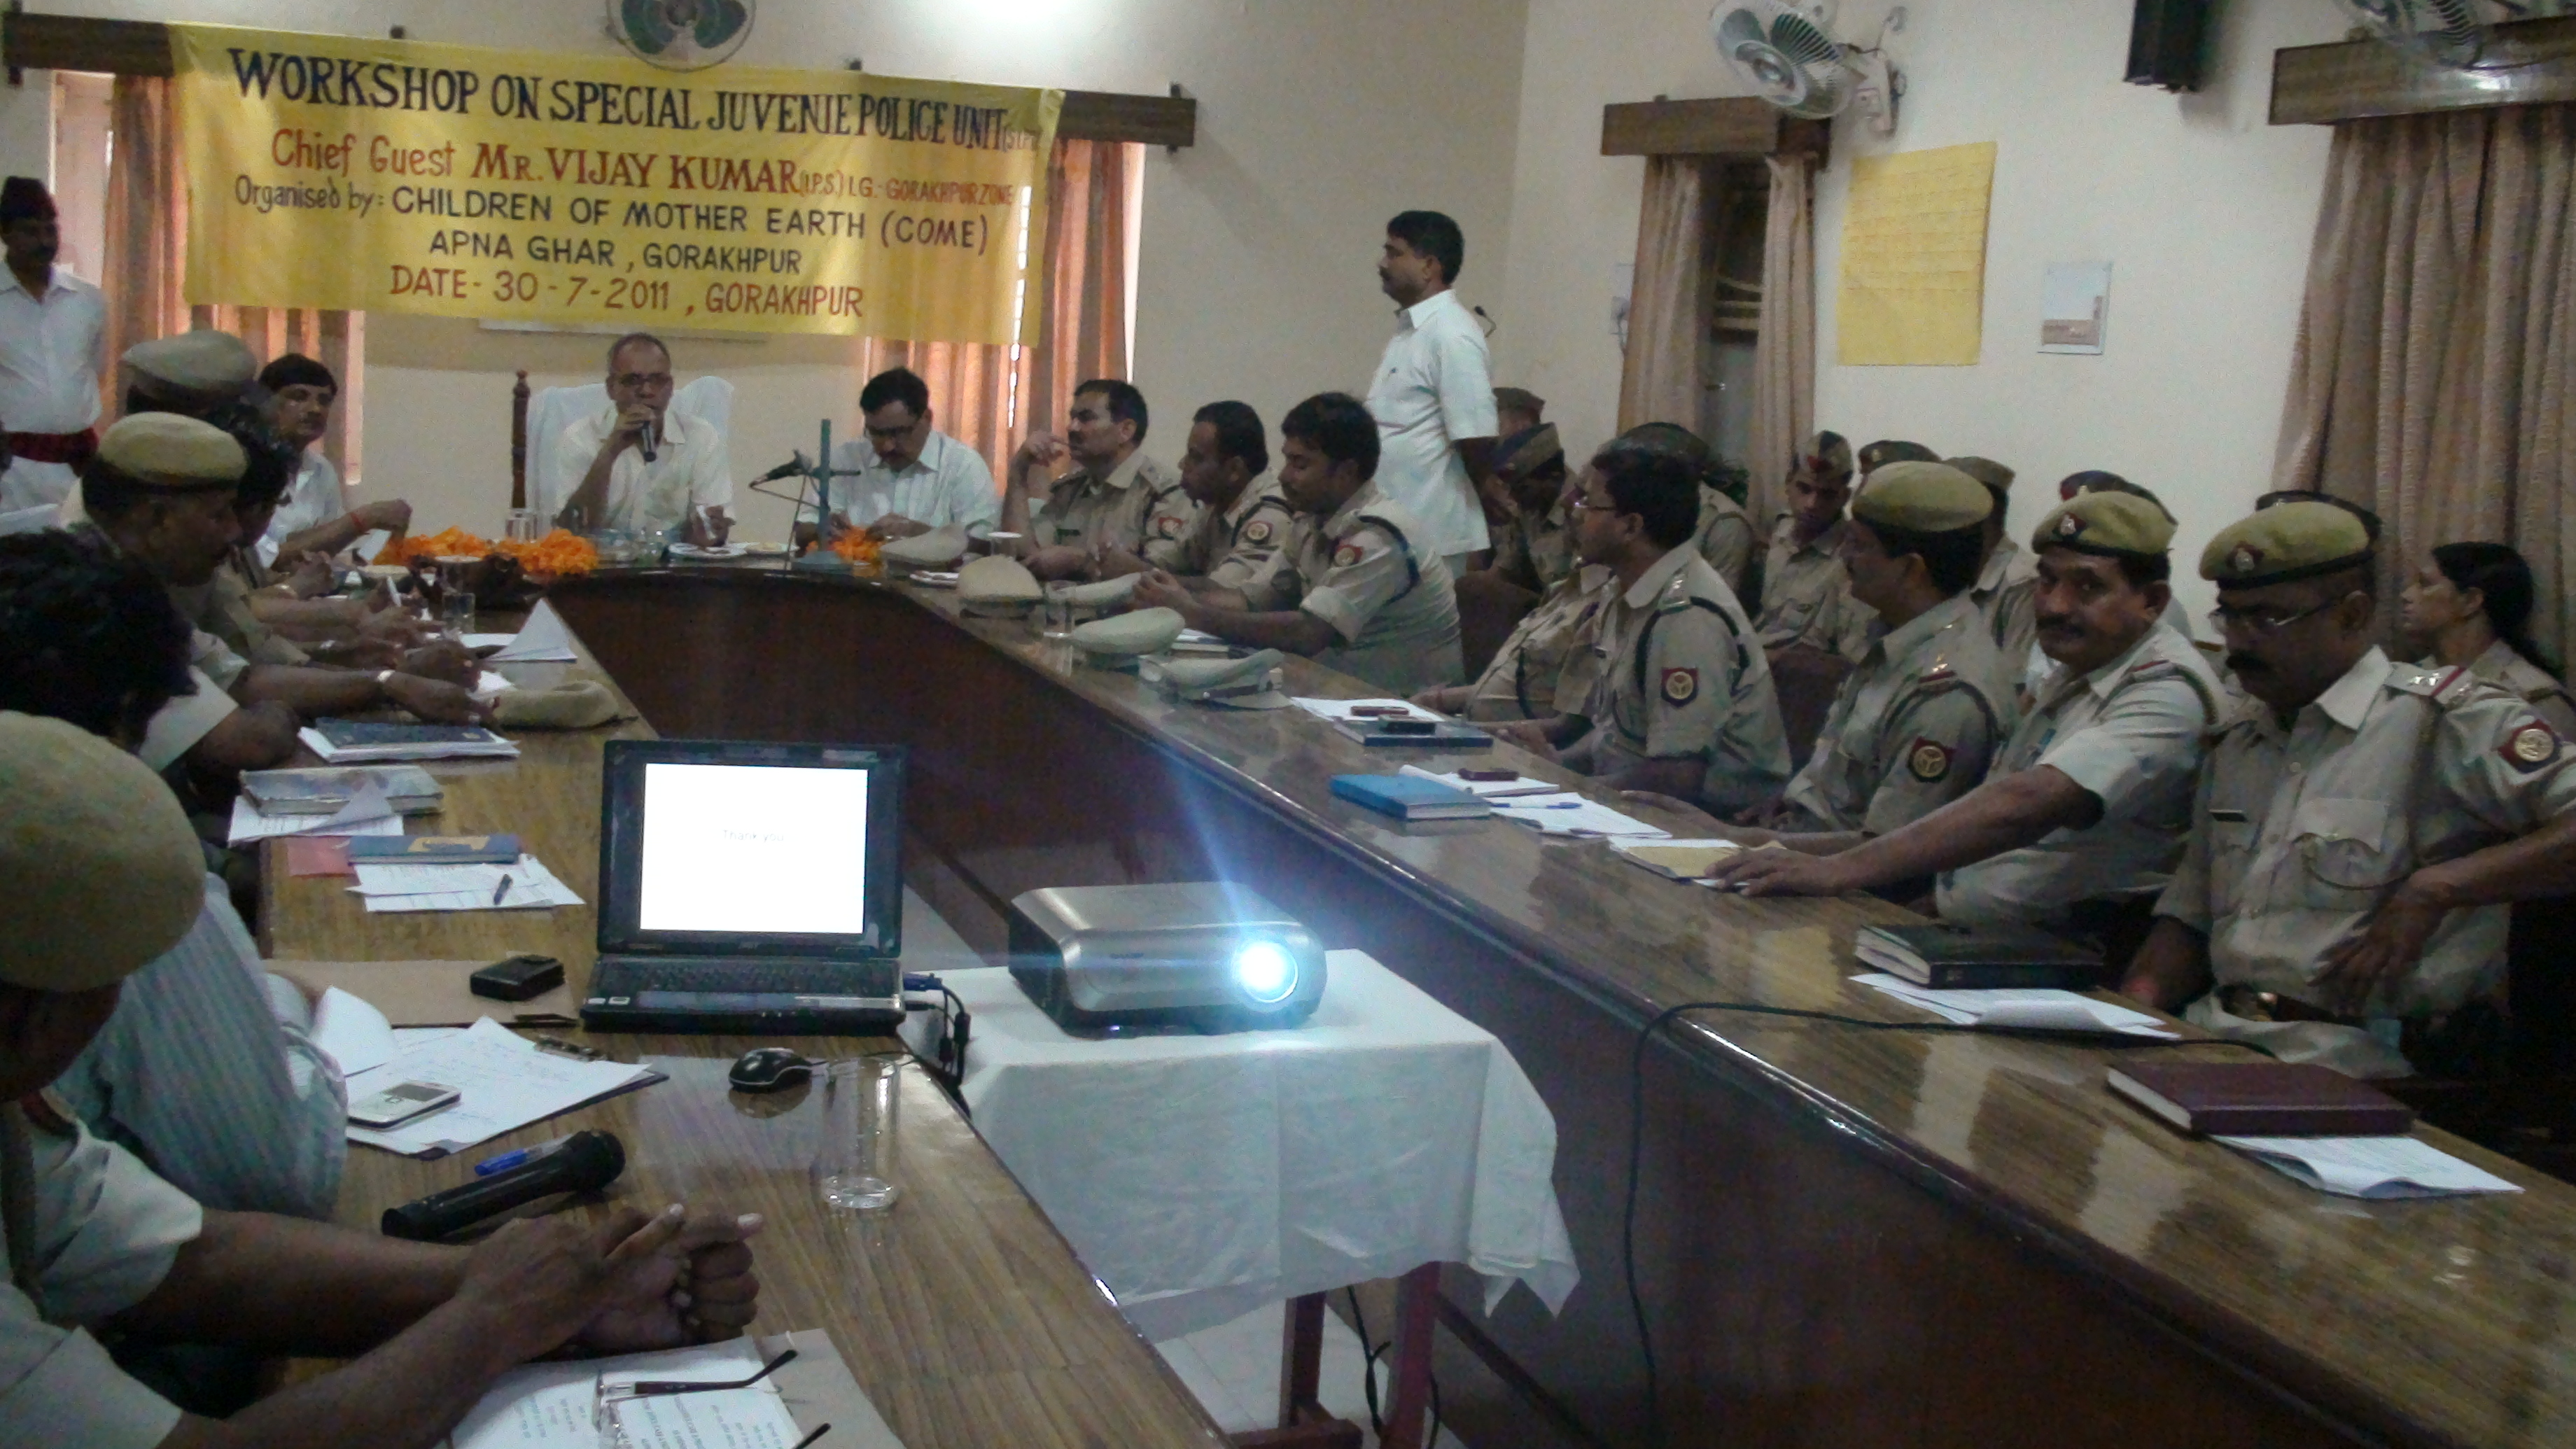 Photo of a Child Rights Workshop given by CoME